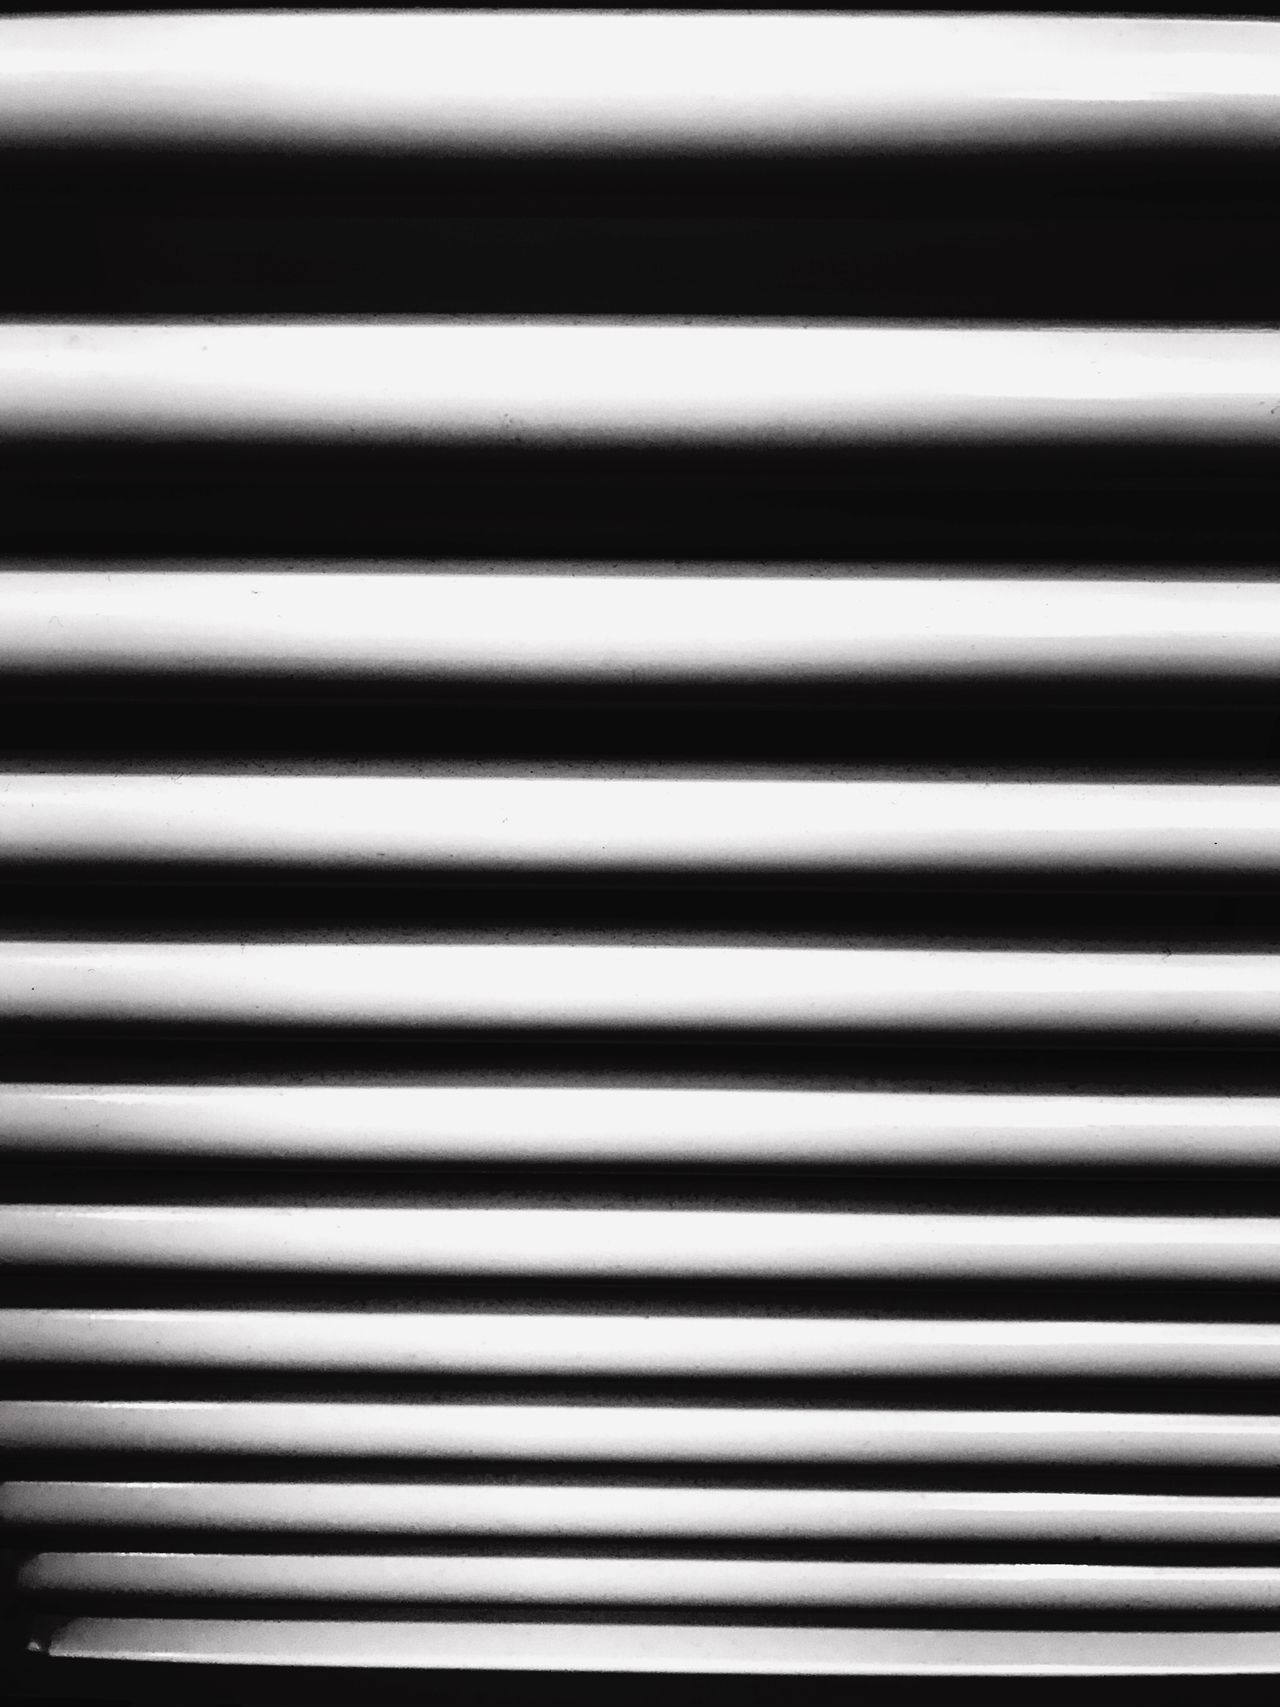 Parallel Parallel Lines Bars Full Frame Backgrounds Pattern No People Close-up Radiator Monochrome Monochrome Photography Blackandwhite Black & White Blackandwhite Photography Day Indoors